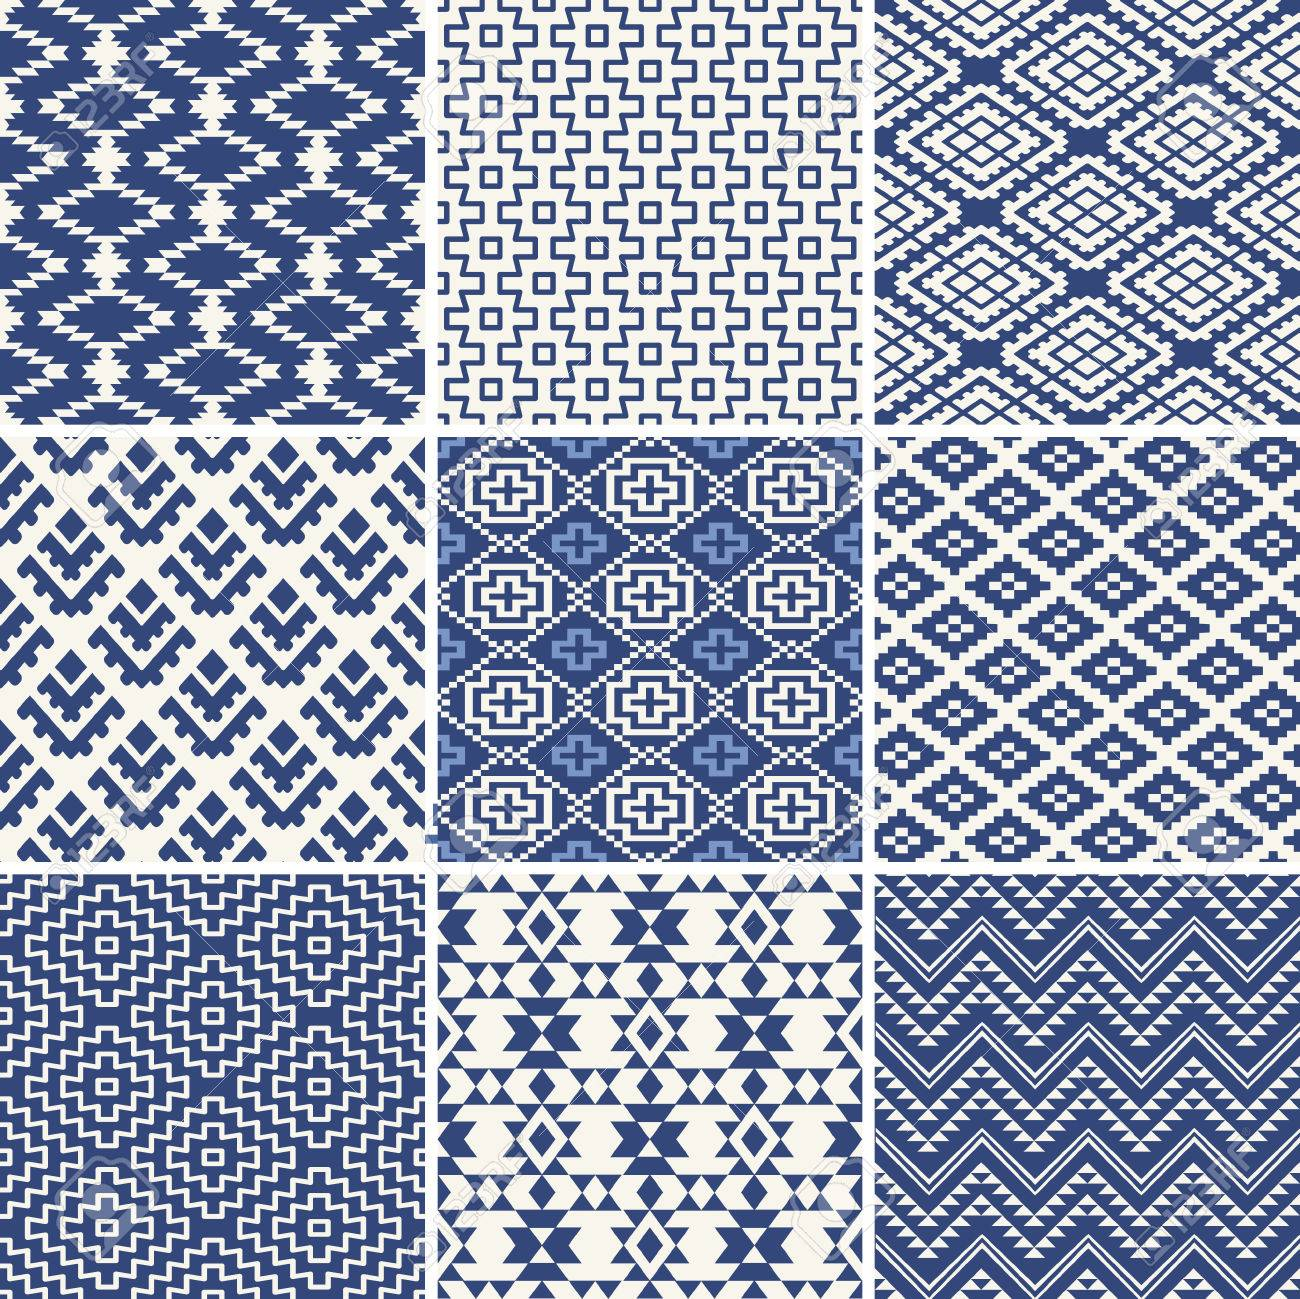 Geometric seamless ethnic background collection in blue and white - 41785749